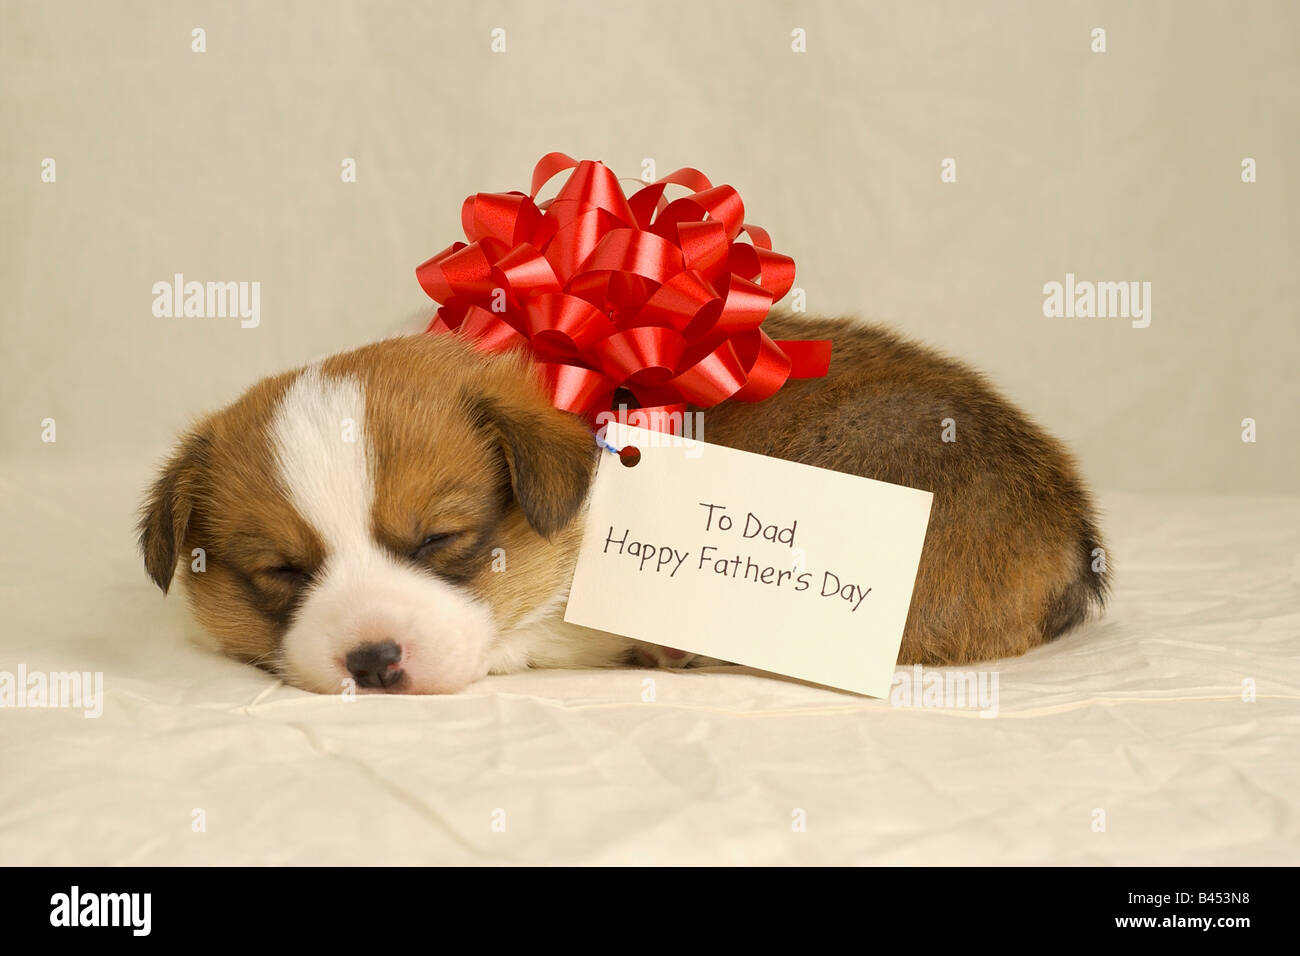 Puppy wearing a red bow - Stock Image